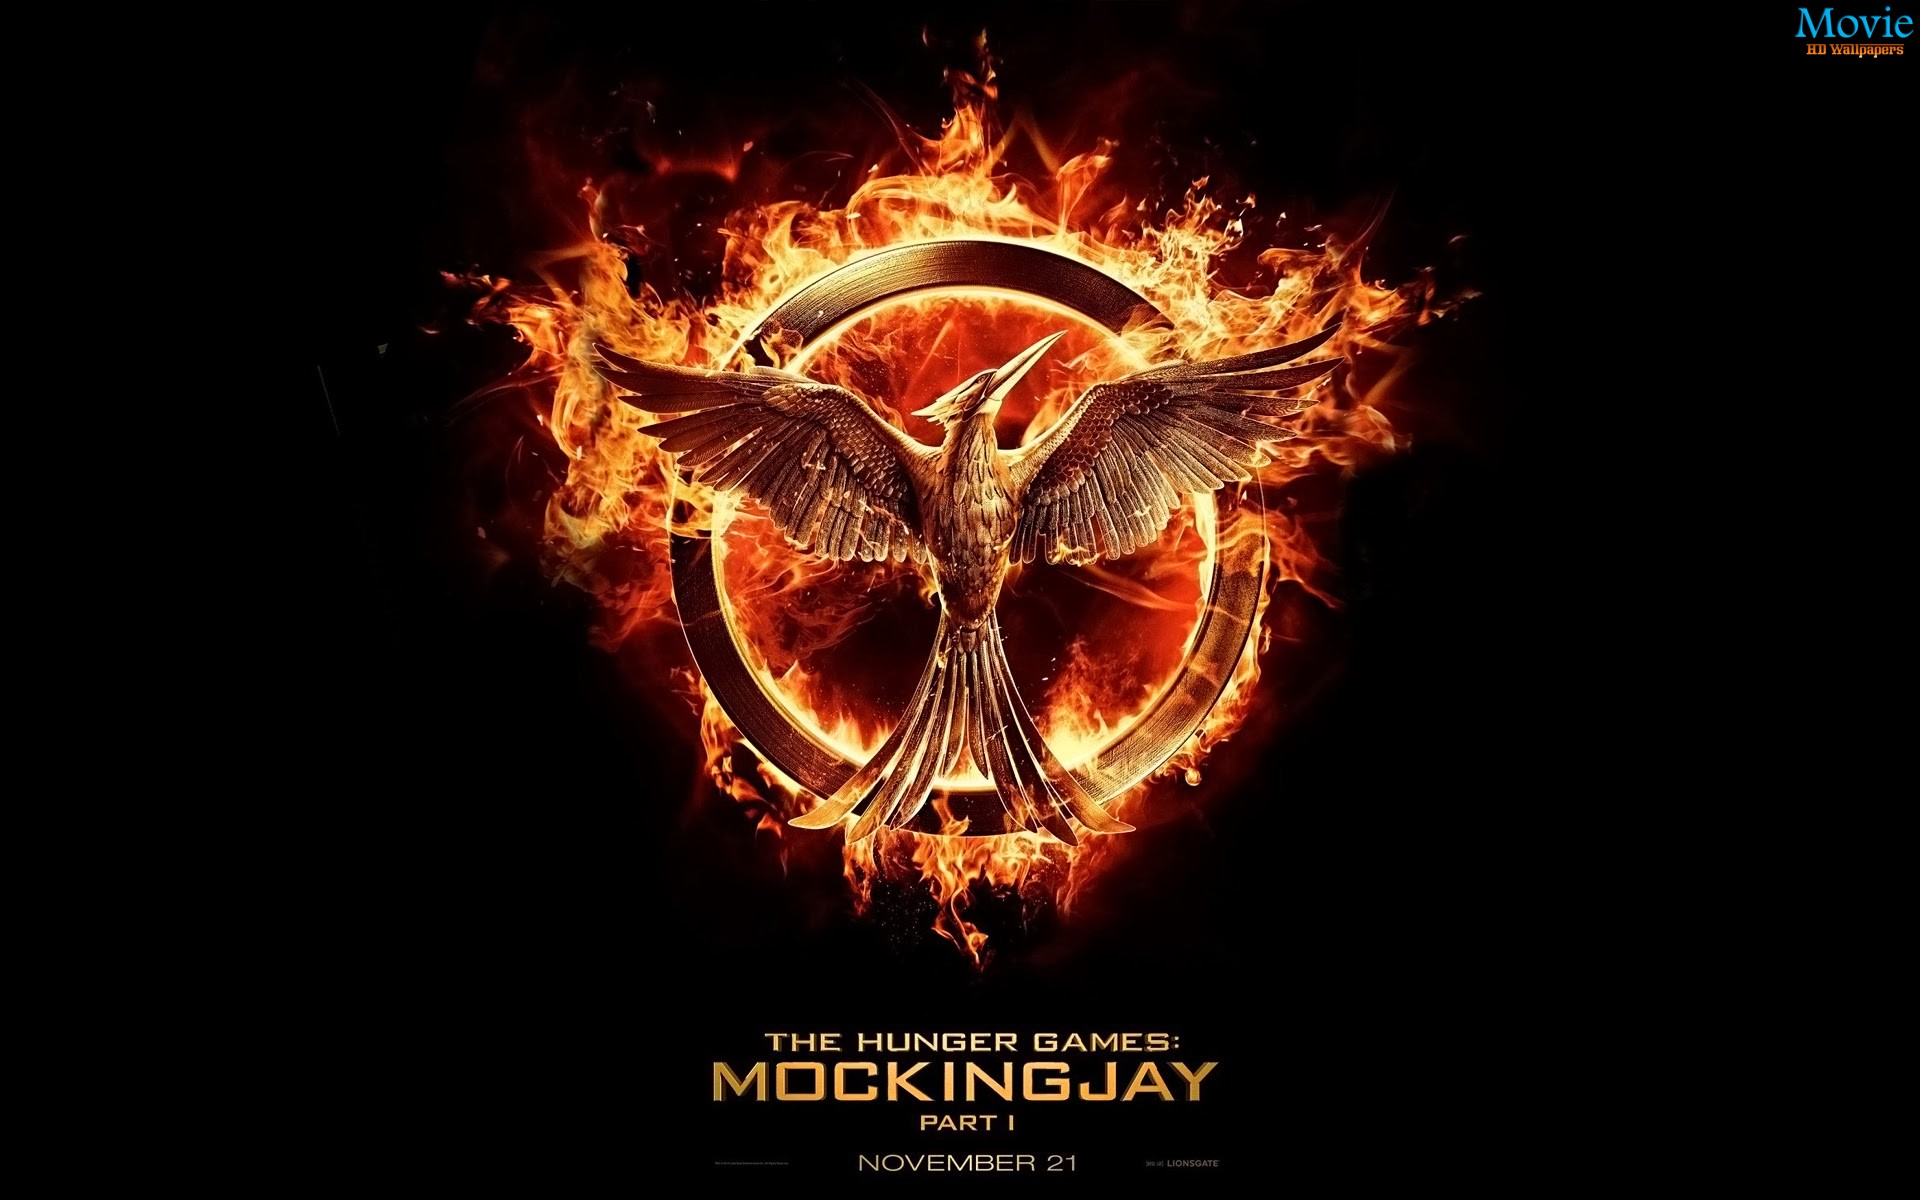 The hunger games mockingjay part 1 free wallpapers